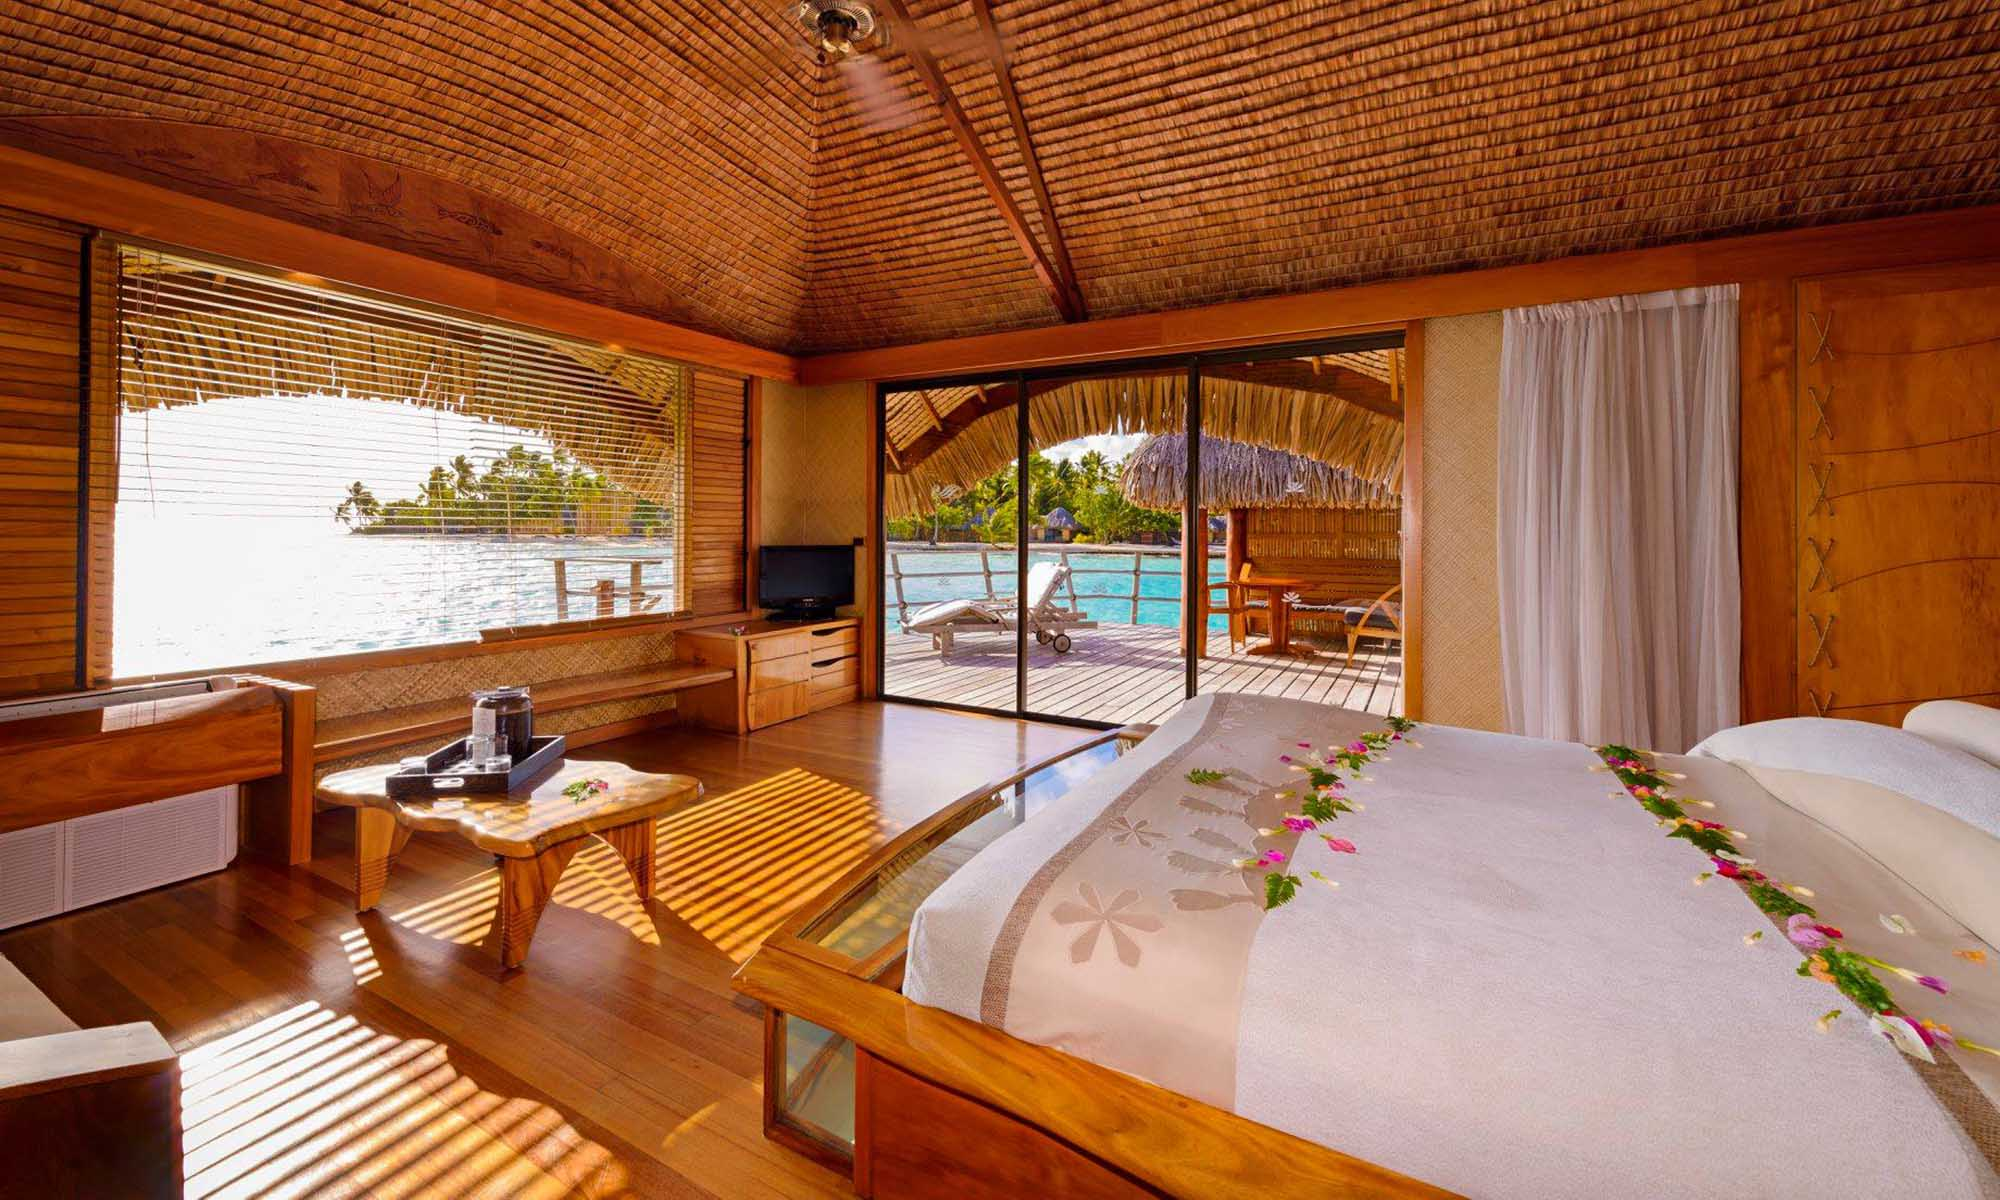 Le Taha'a Island Resort & Spa, Overwater Bungalow Interior